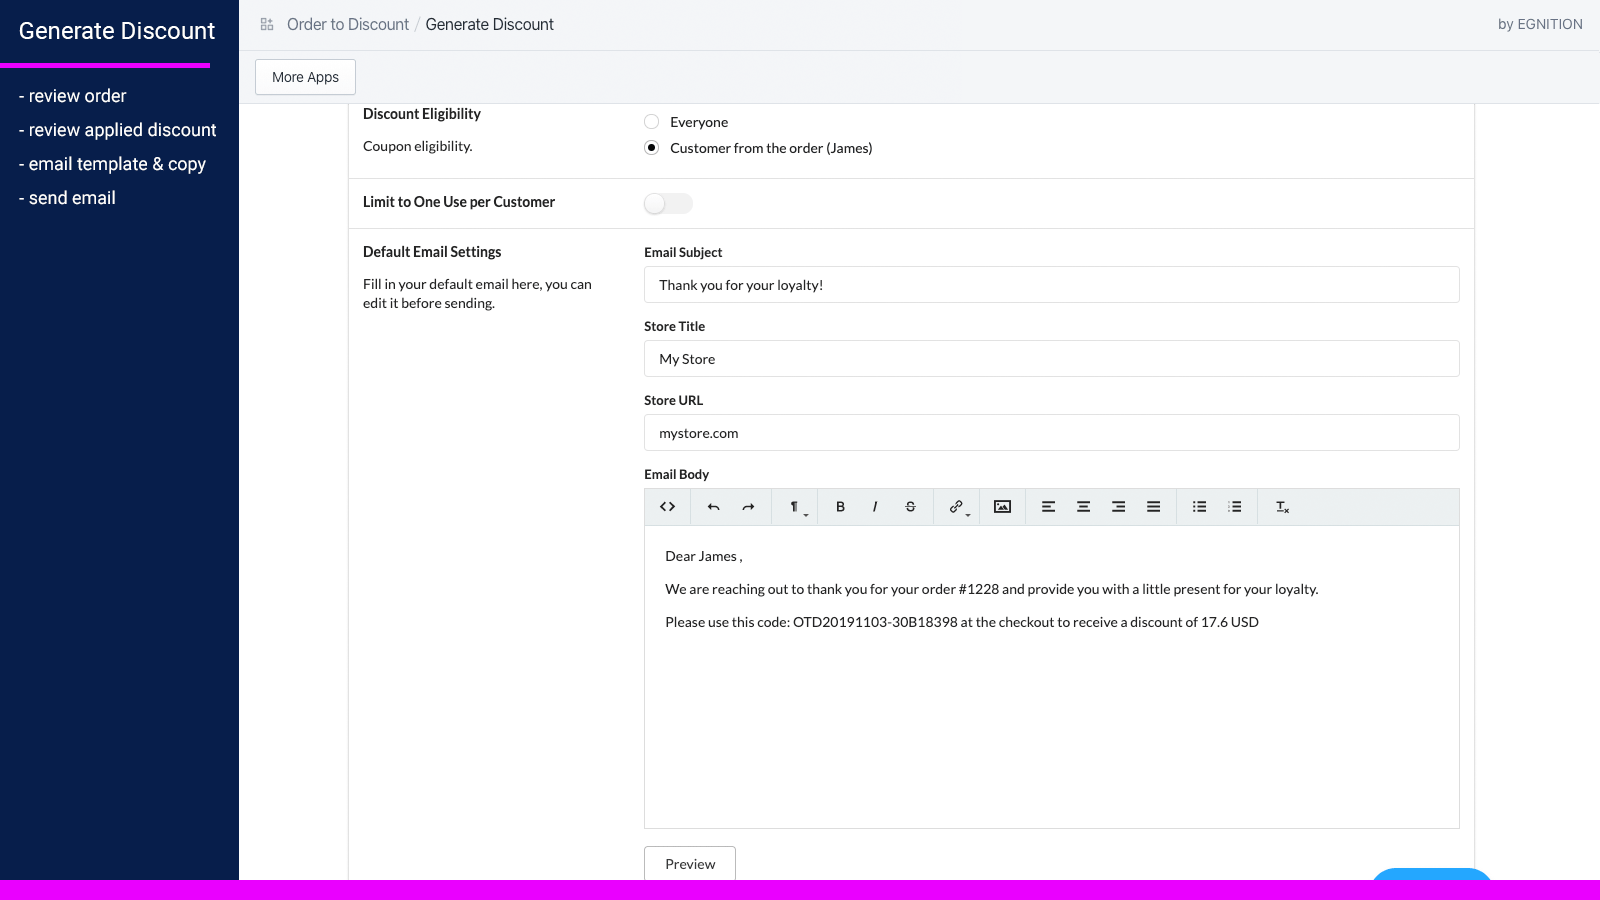 Discount email notification settings and preview.